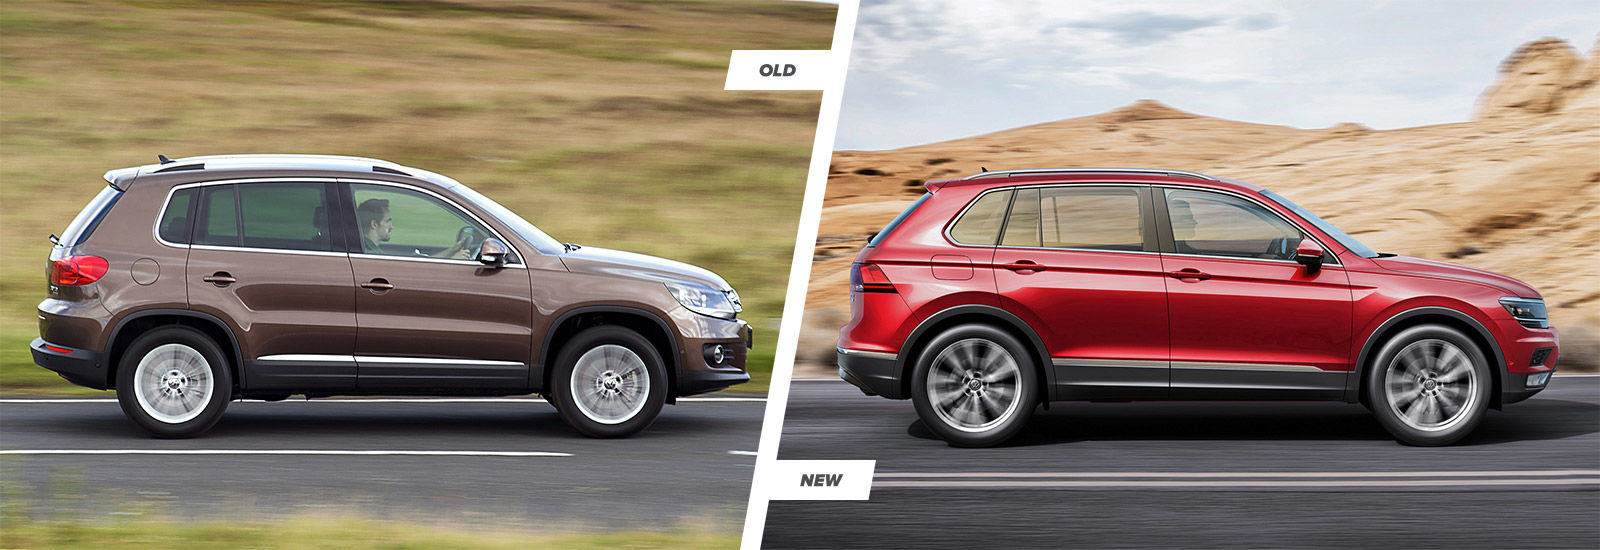 Volkswagen tiguan old vs new interior